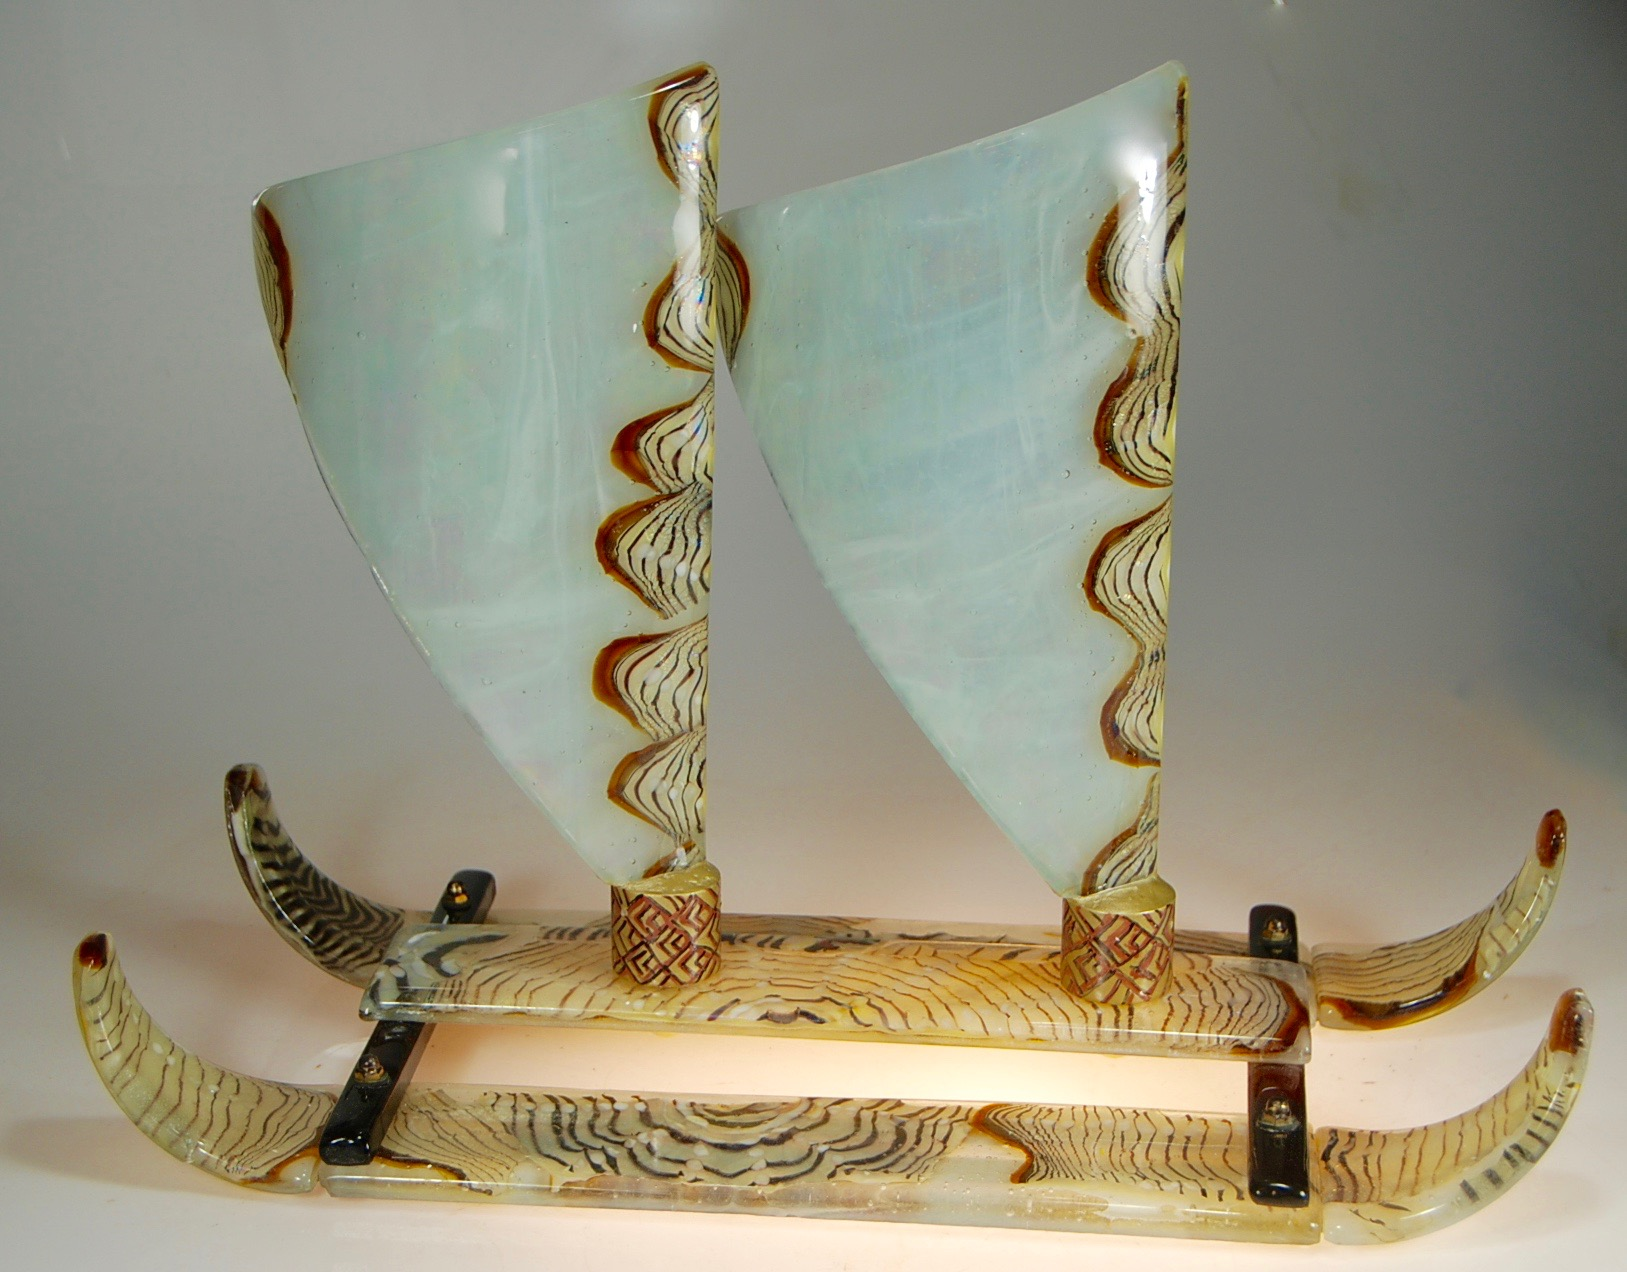 """24"""" long x 10"""" wide x18"""" tall double sails fused, blown, and slumped glass by rick strini 2016FOR SALE NOW. Inquire. 808 5726283 or rick@striniartglass.com"""